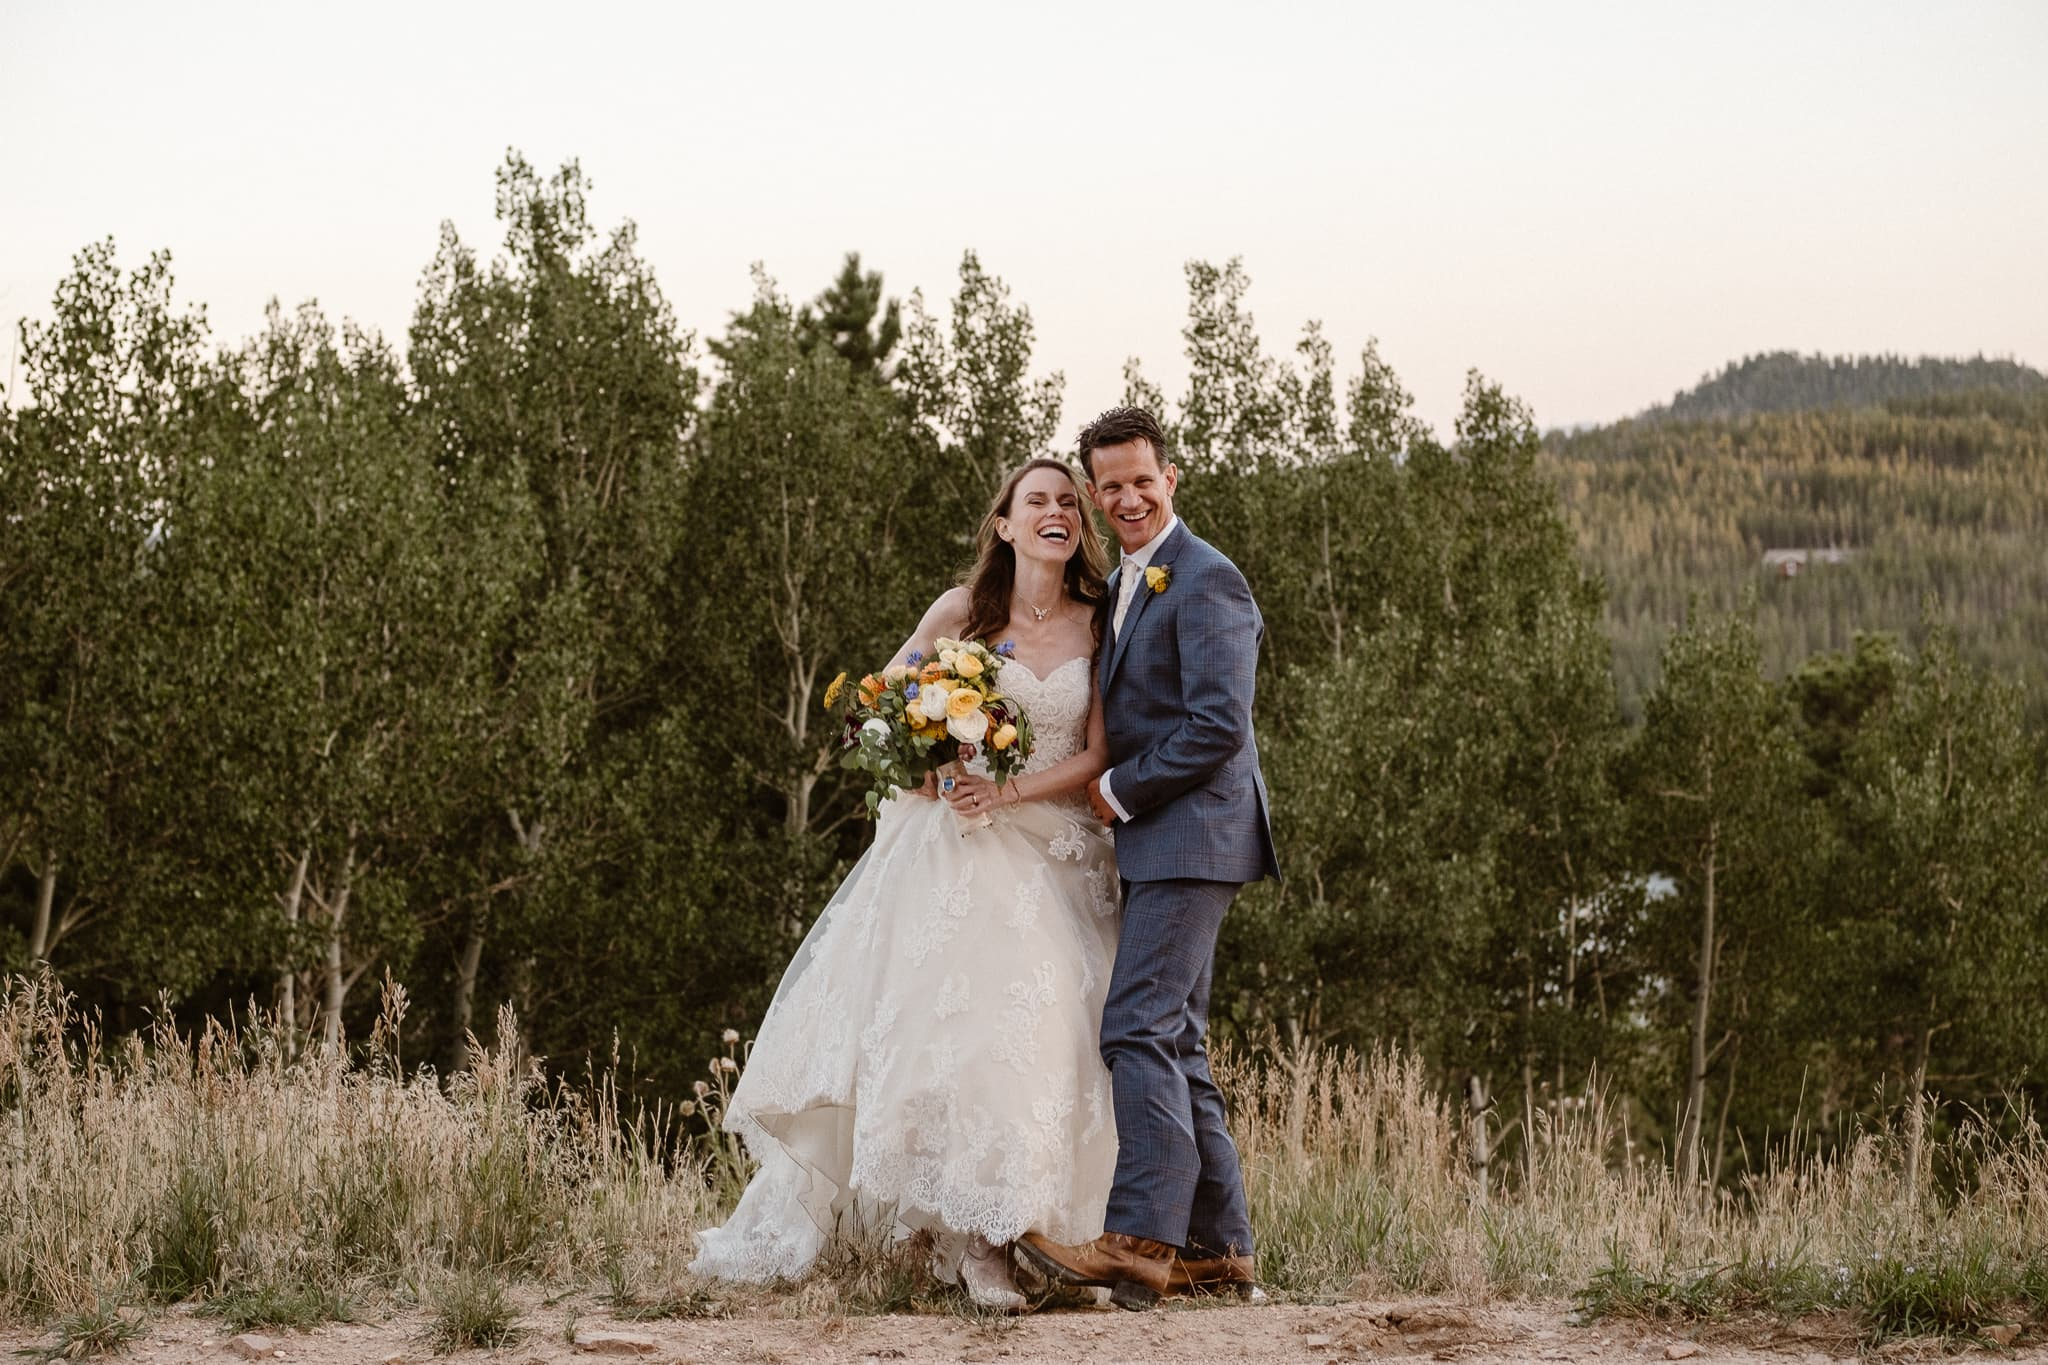 Red Feather Lakes elopement photographer, Colorado intimate cabin wedding, bride portrait with bouquet by Lace & Lilies